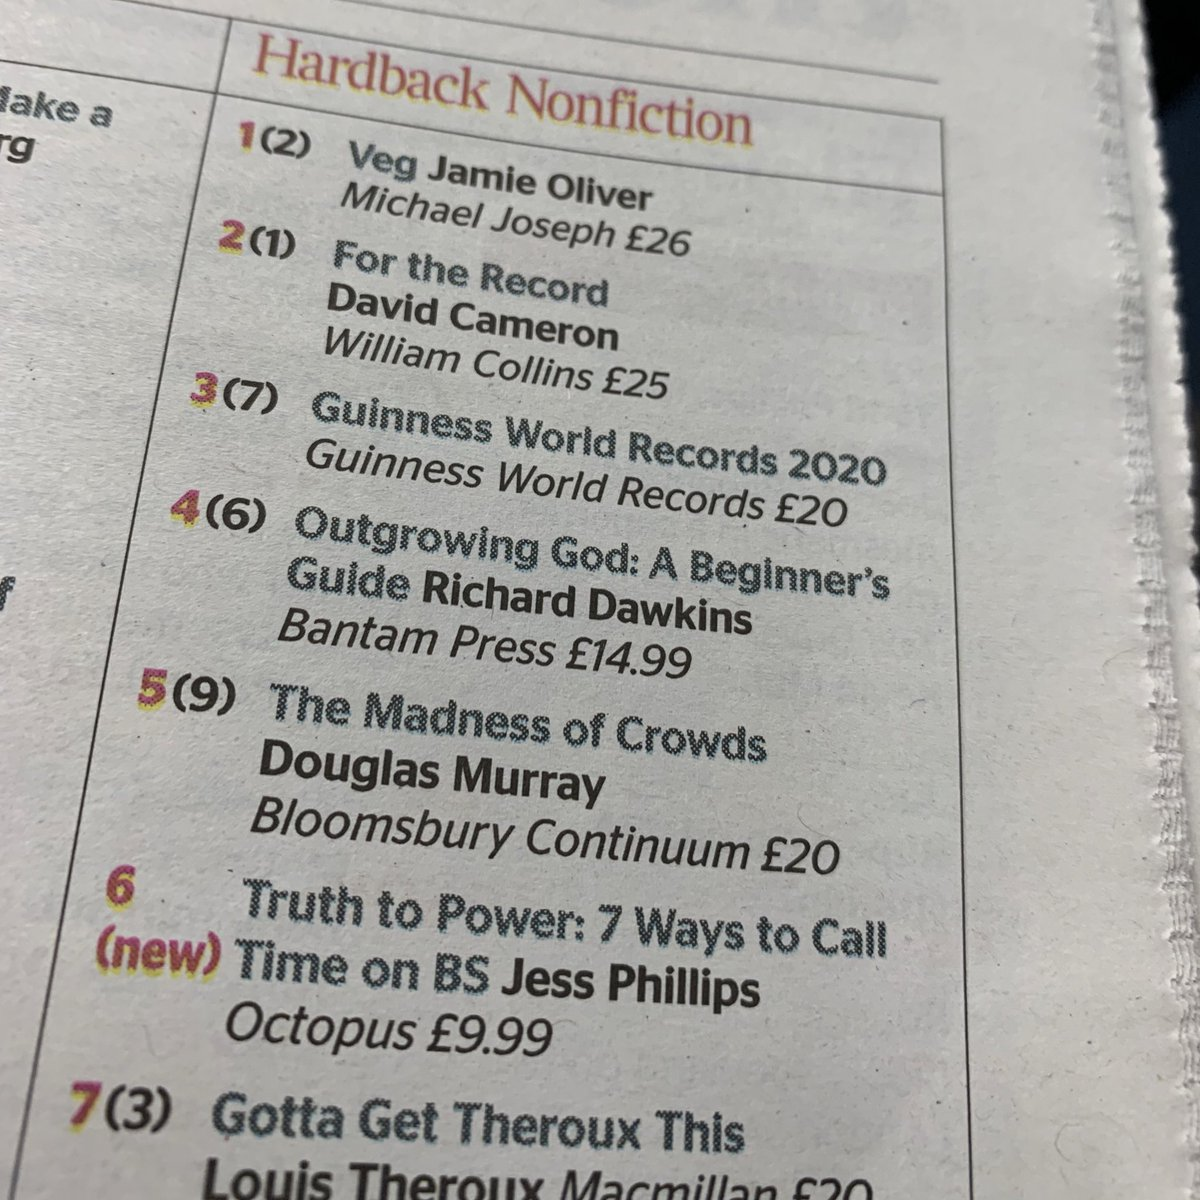 Great to see THE MADNESS OF CROWDS by @DouglasKMurray moving up into the top 5 on @thetimes bestseller list... @BloomsburyBooks